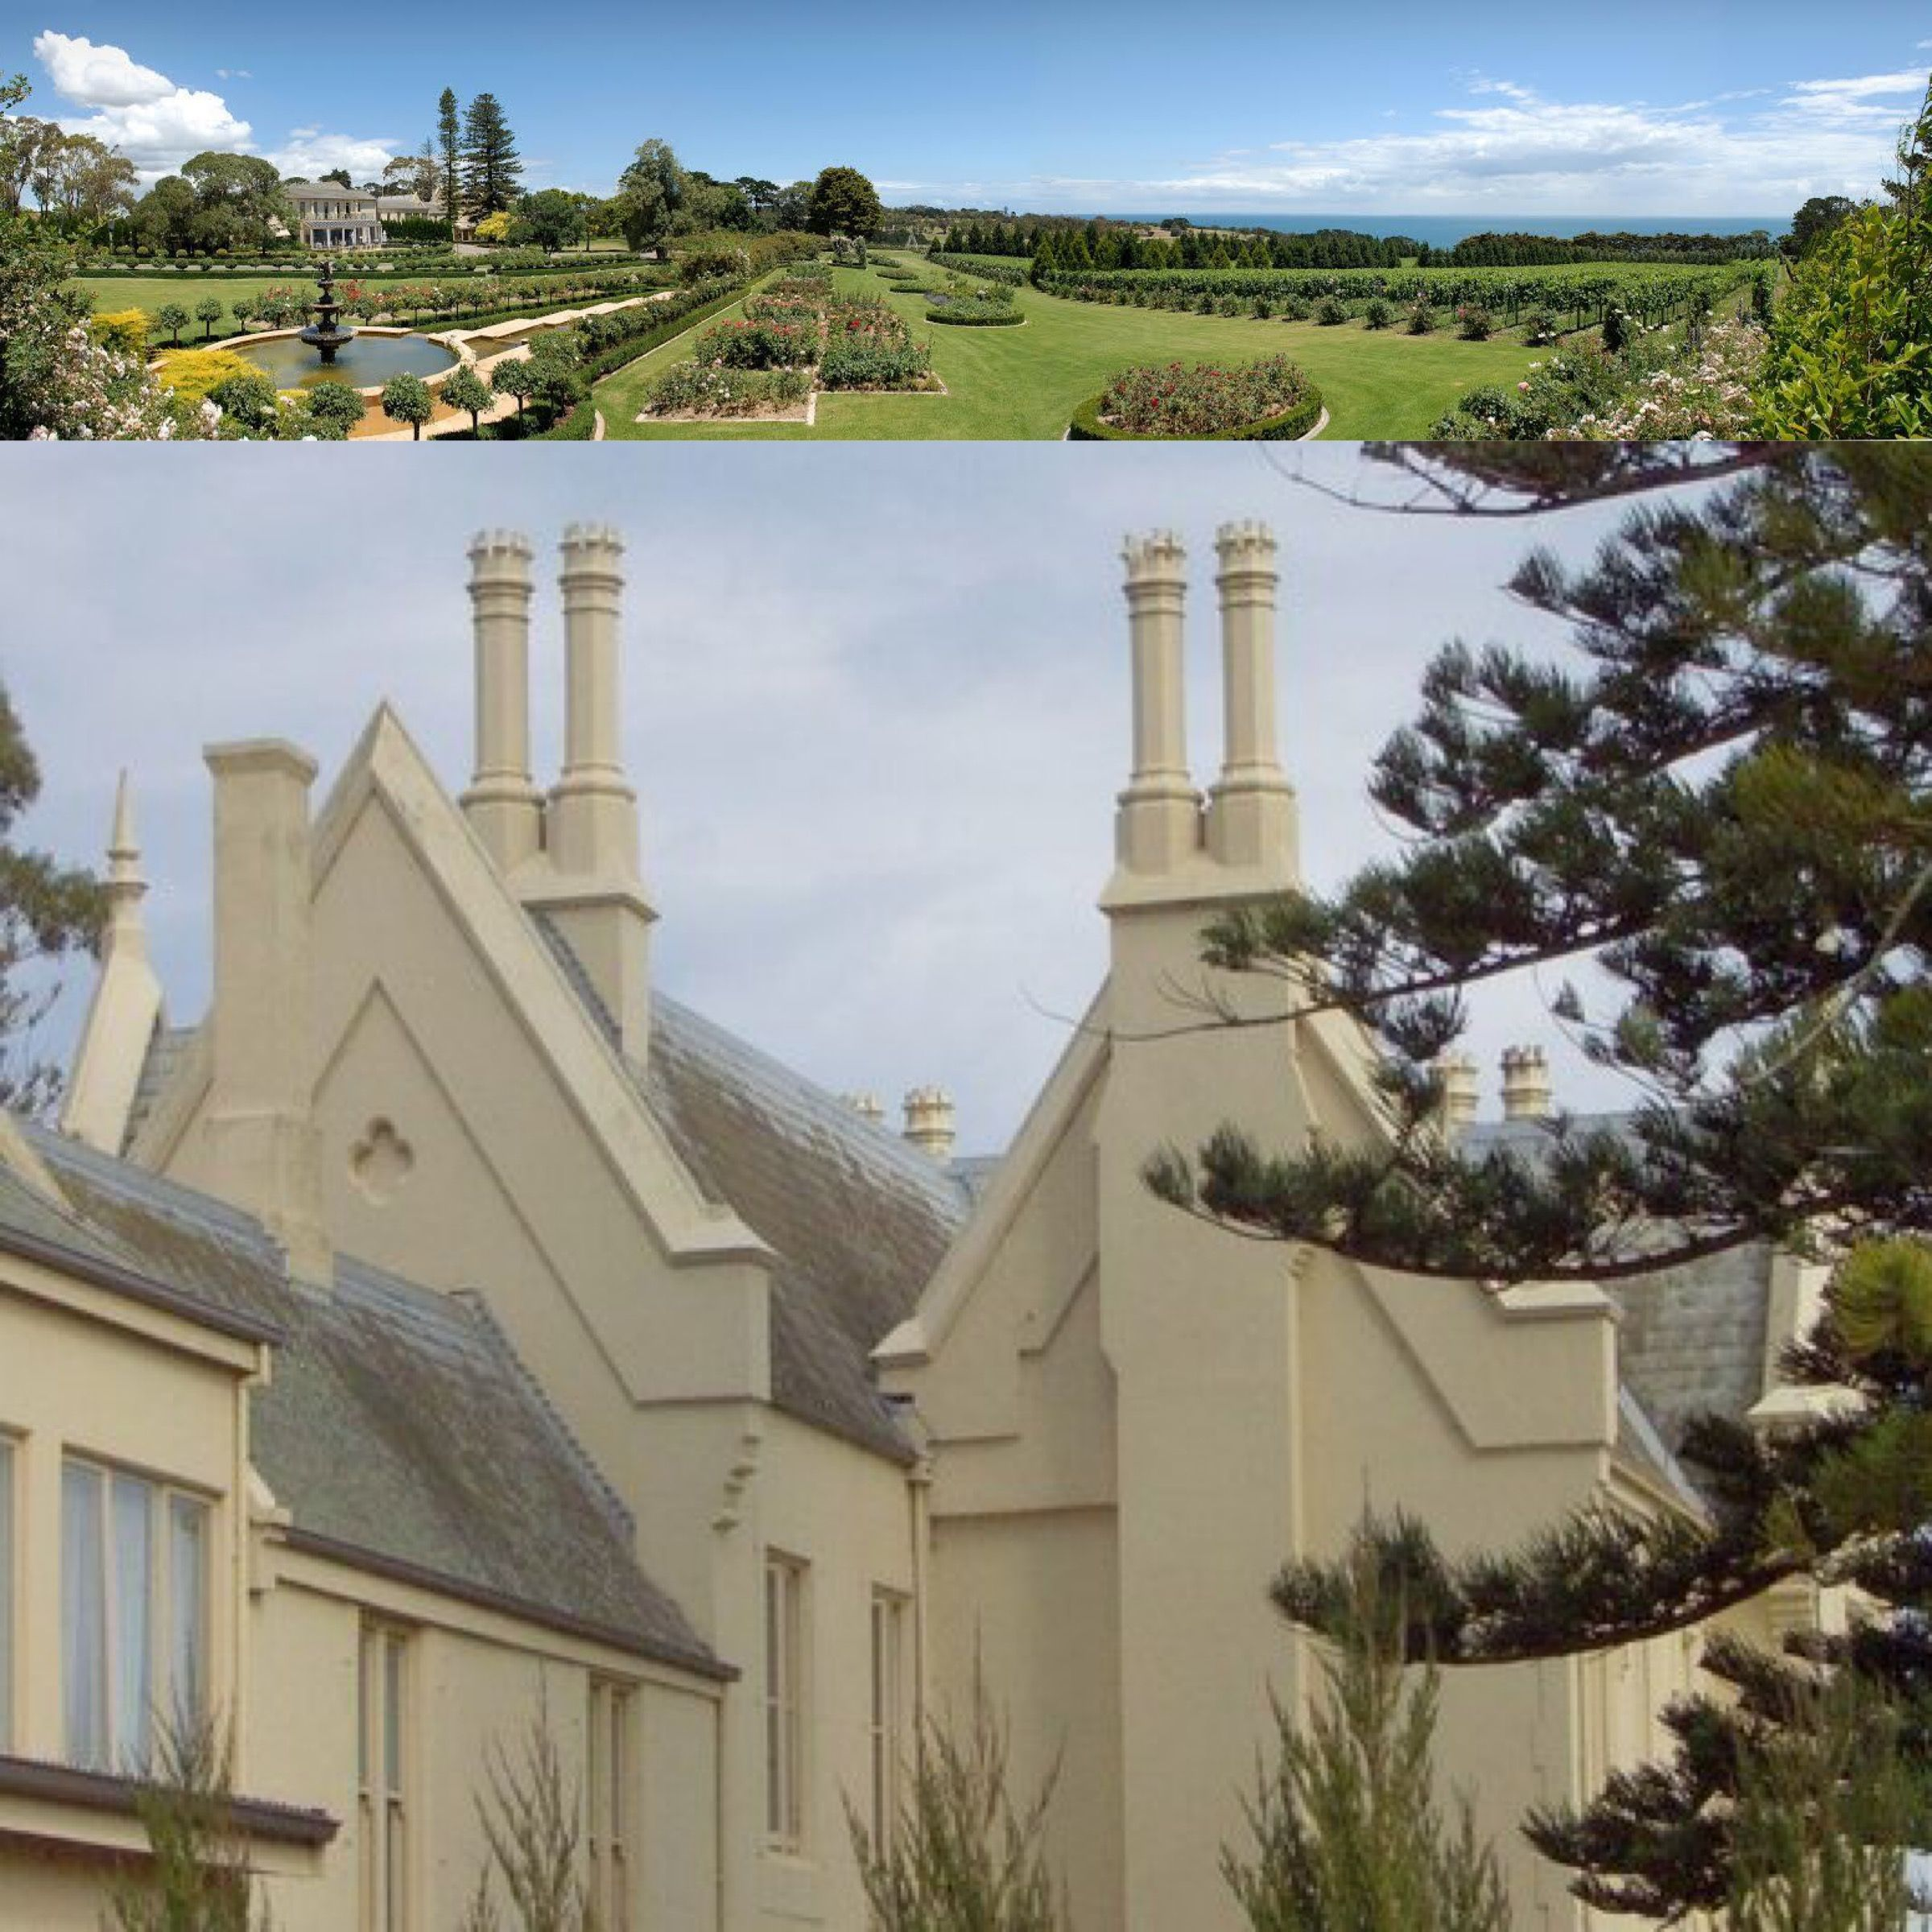 Pin on Mansions, Homesteads and Significant Villas of Victoria